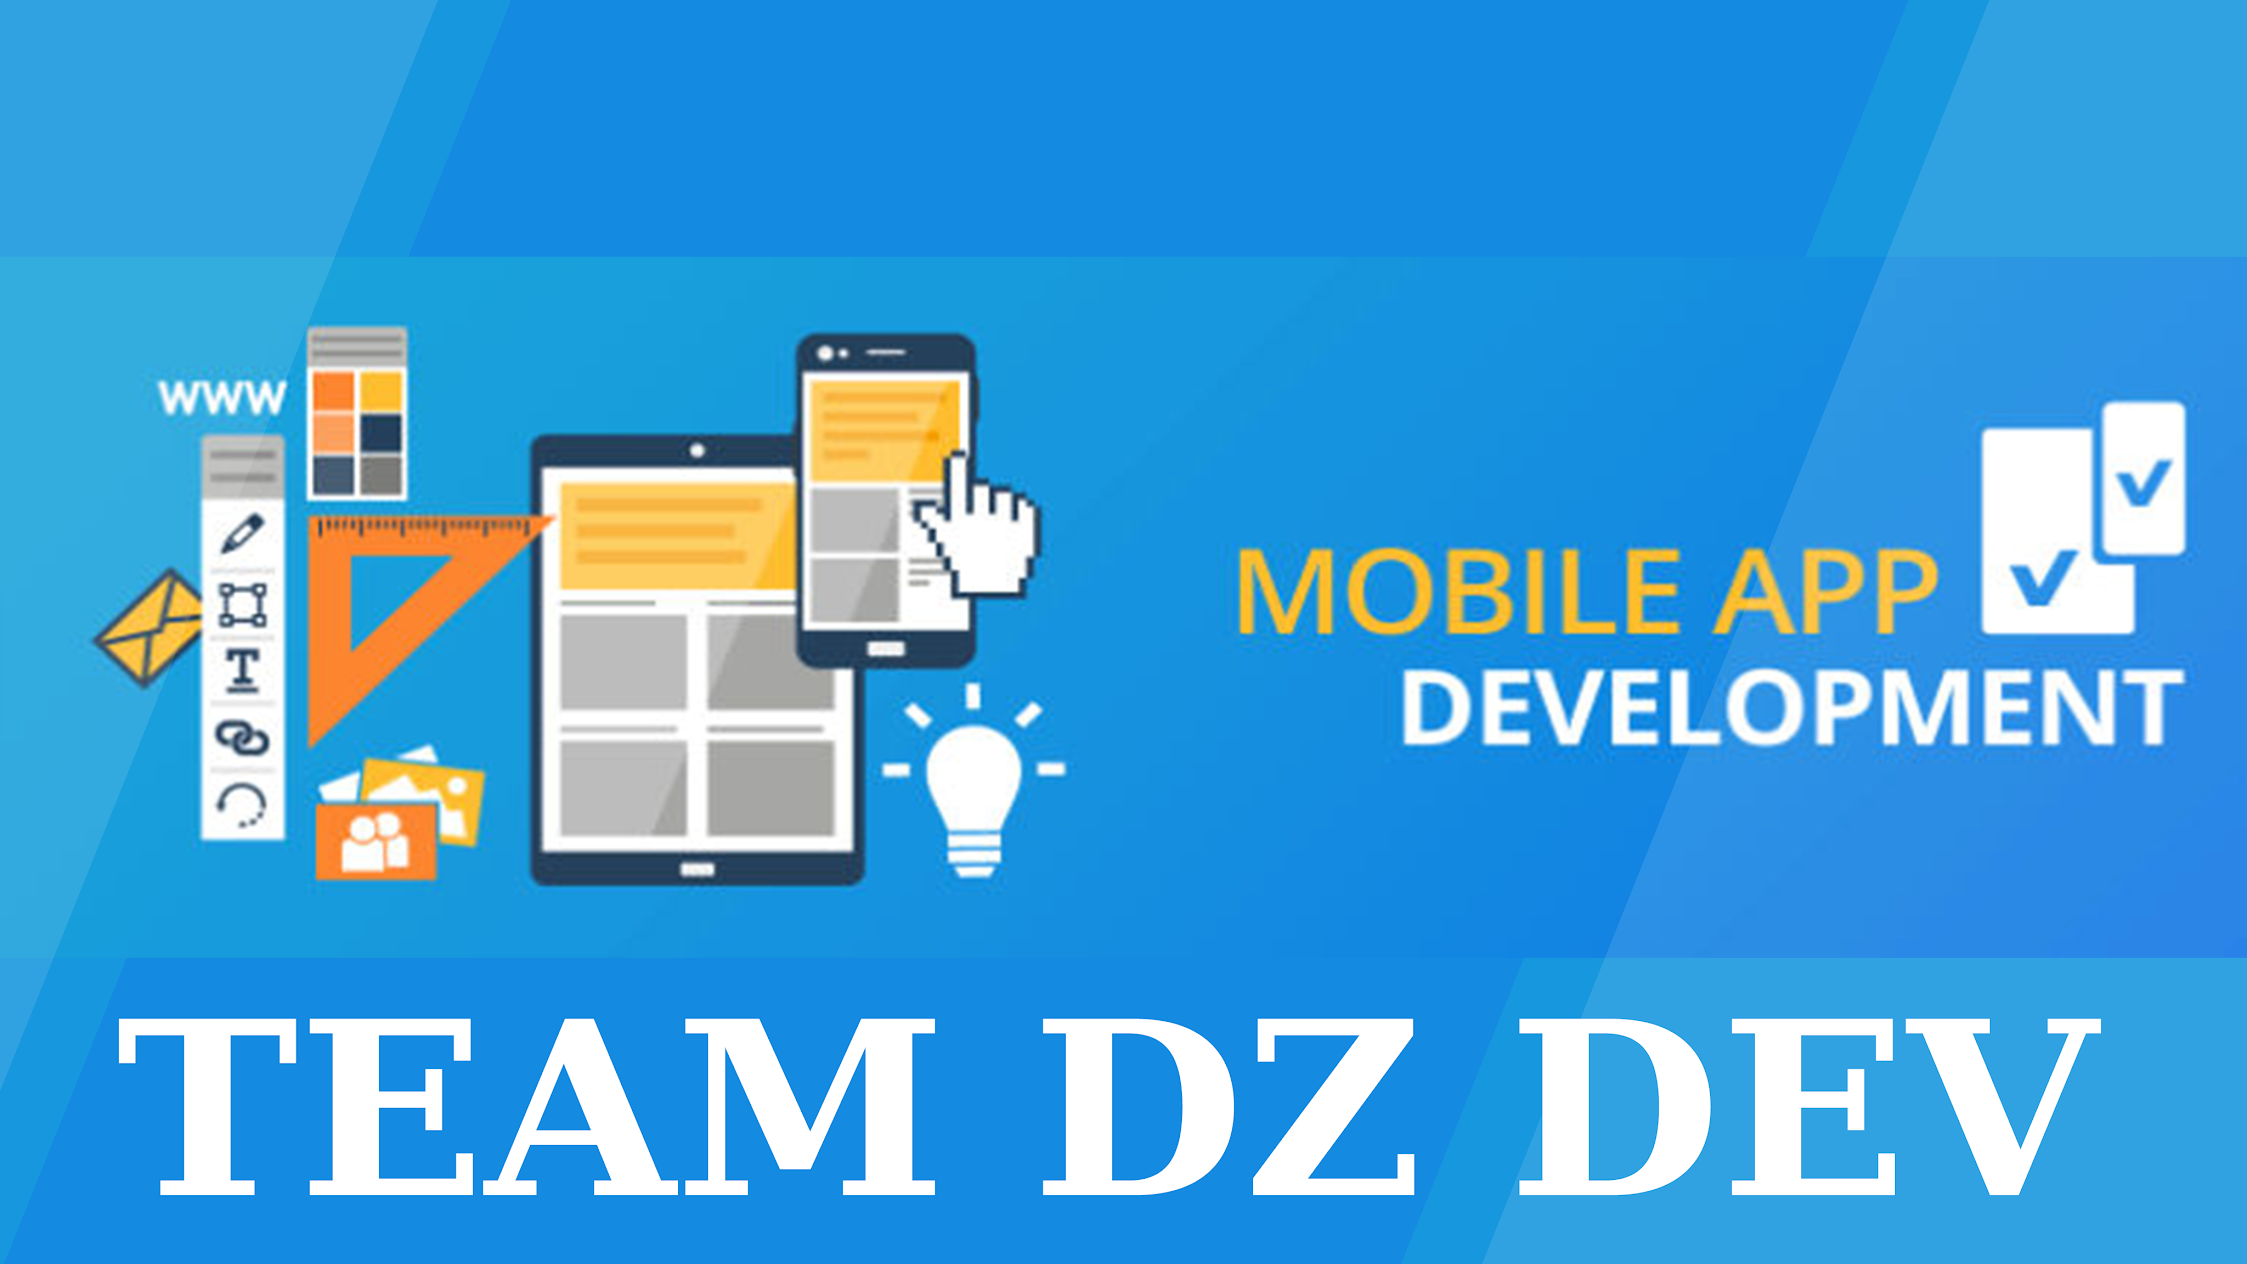 Android Apps By Team Dz Dev On Google Play